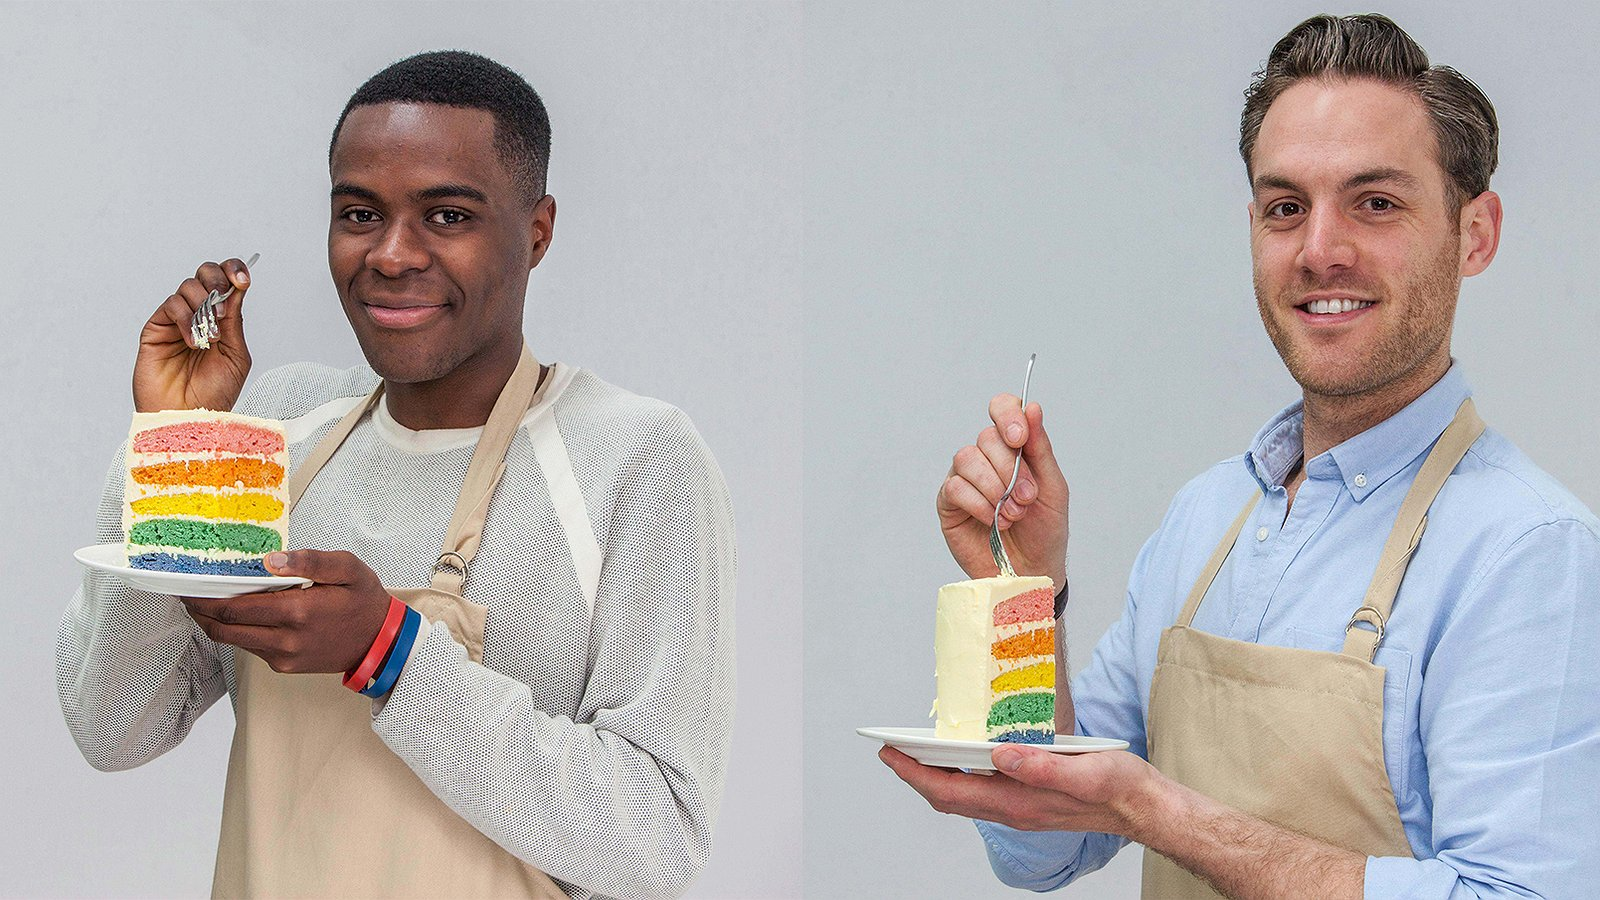 Meet Liam en Tom. De cuties van The Great British Bake Off